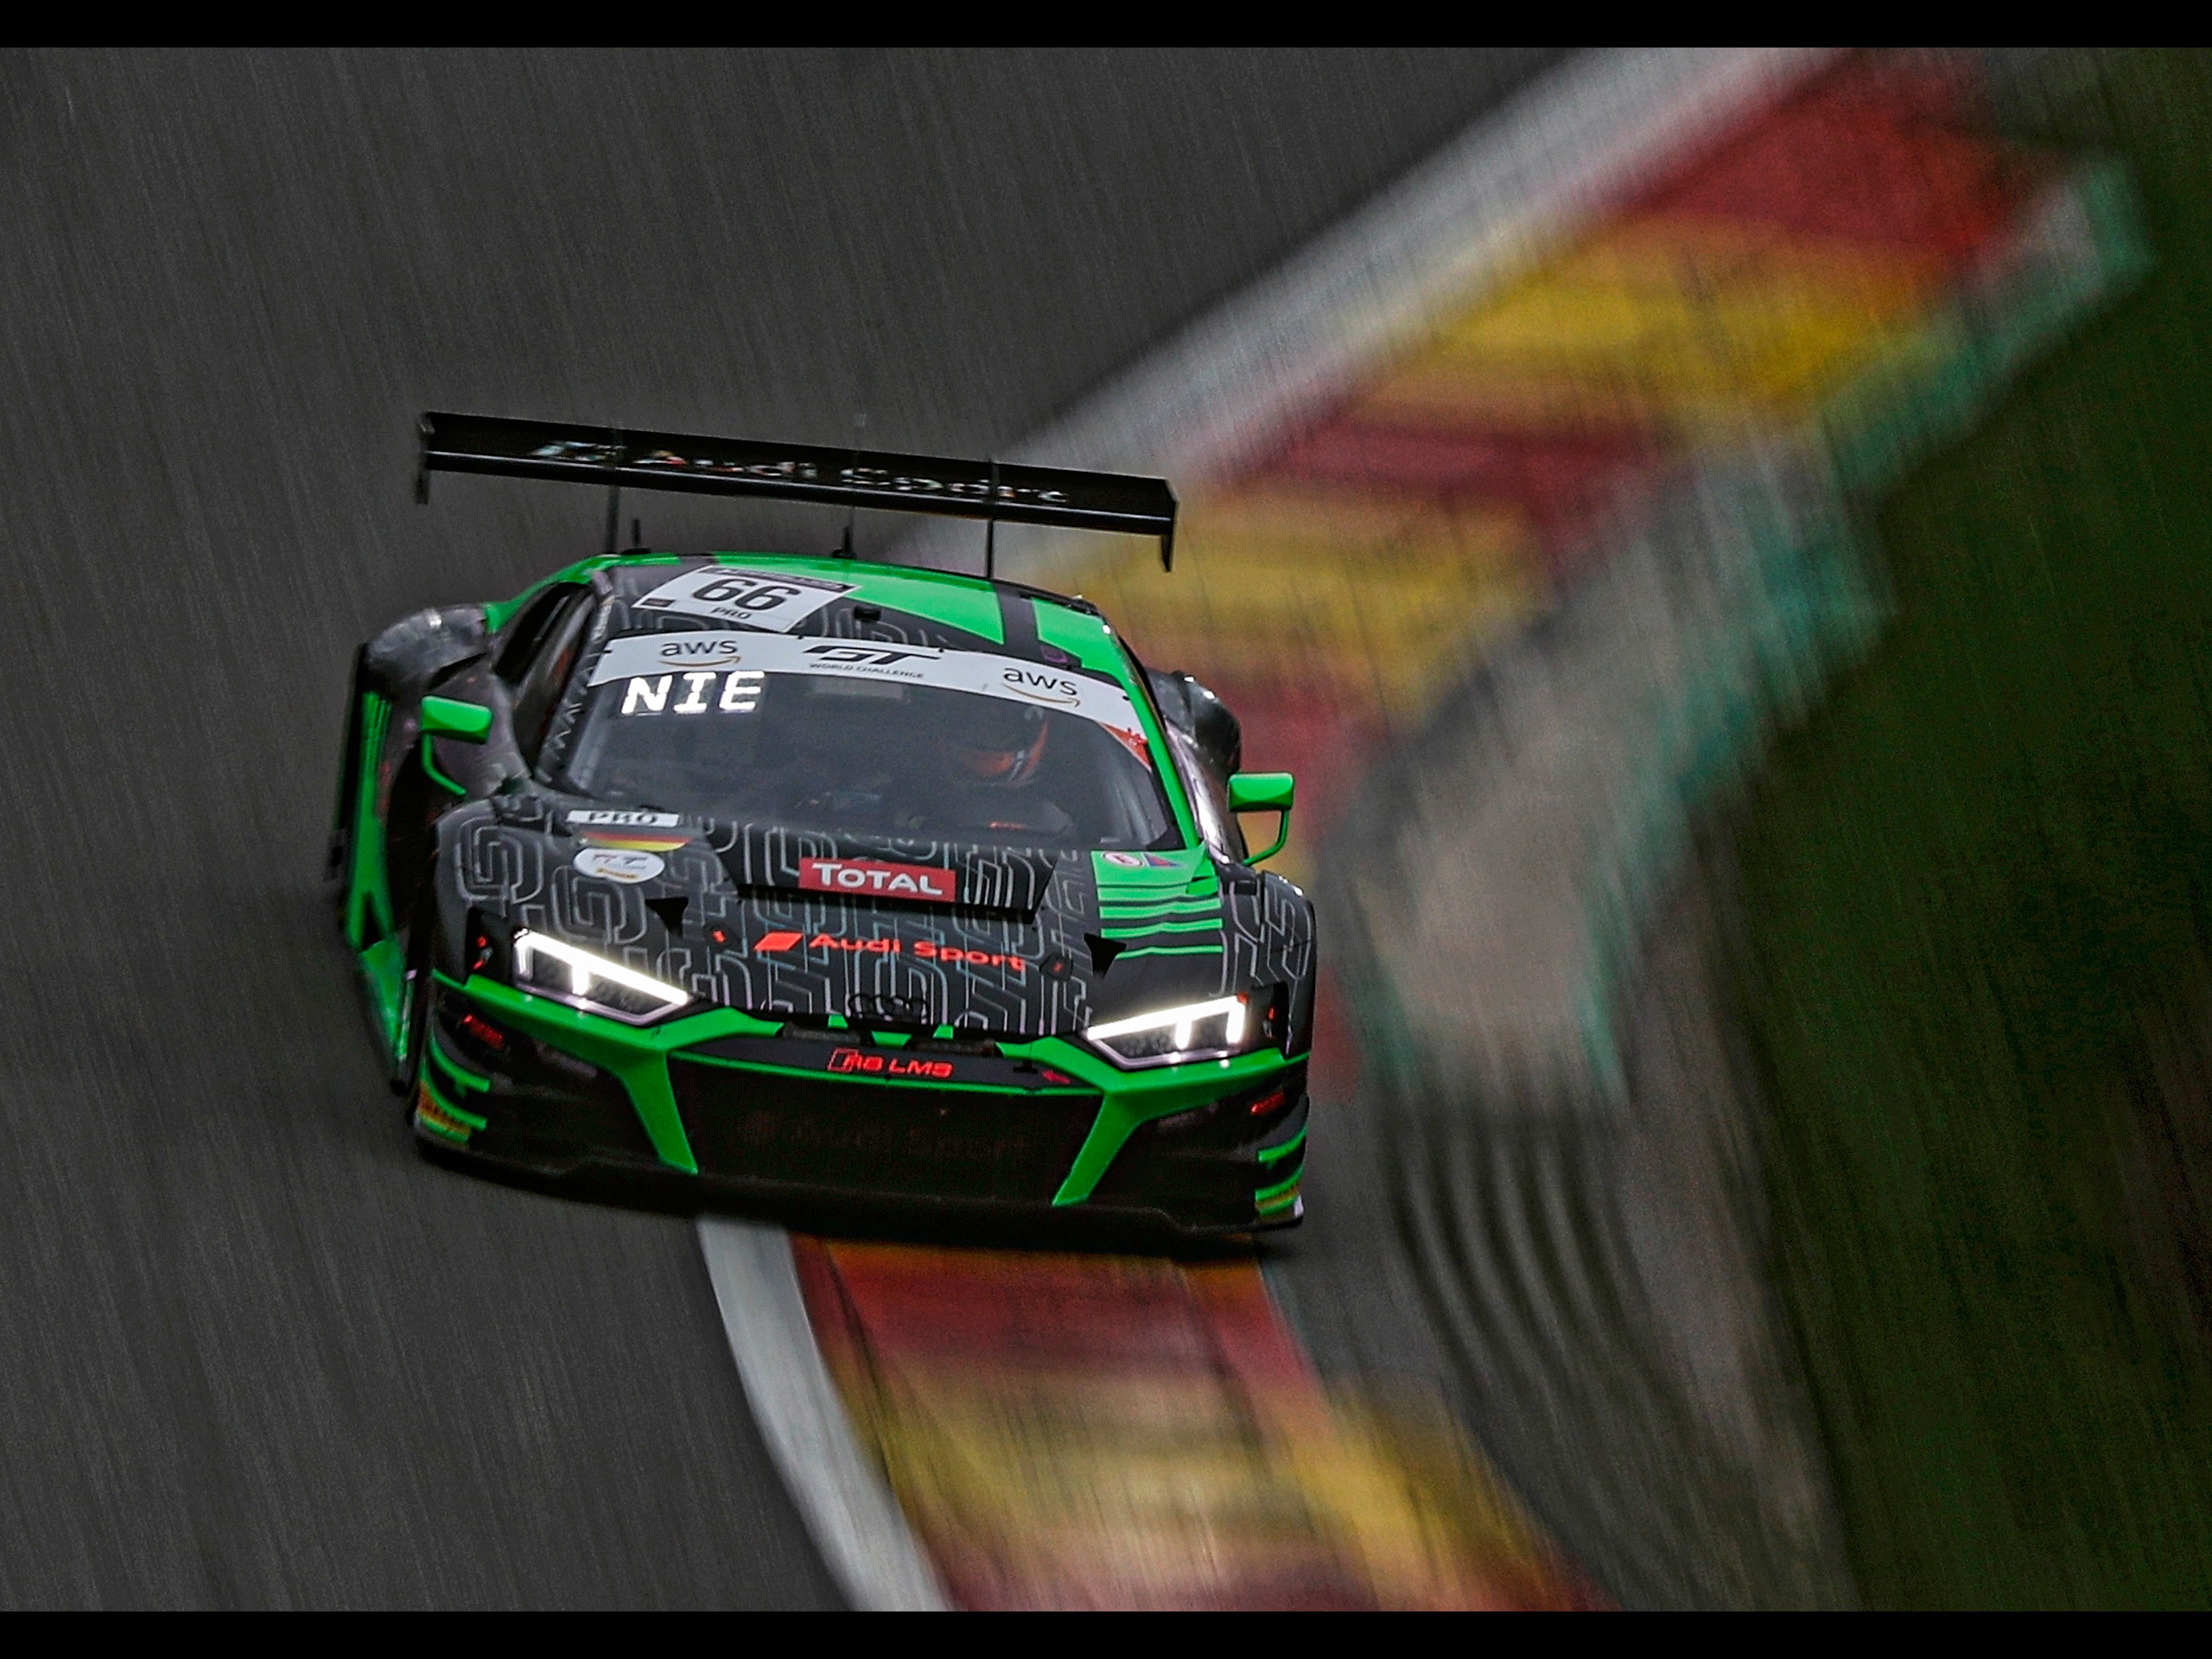 Audi R8 Lms Gt3 2nd At 24 Hours Of Spa アウディに嵌まる 壁紙画像ブログ